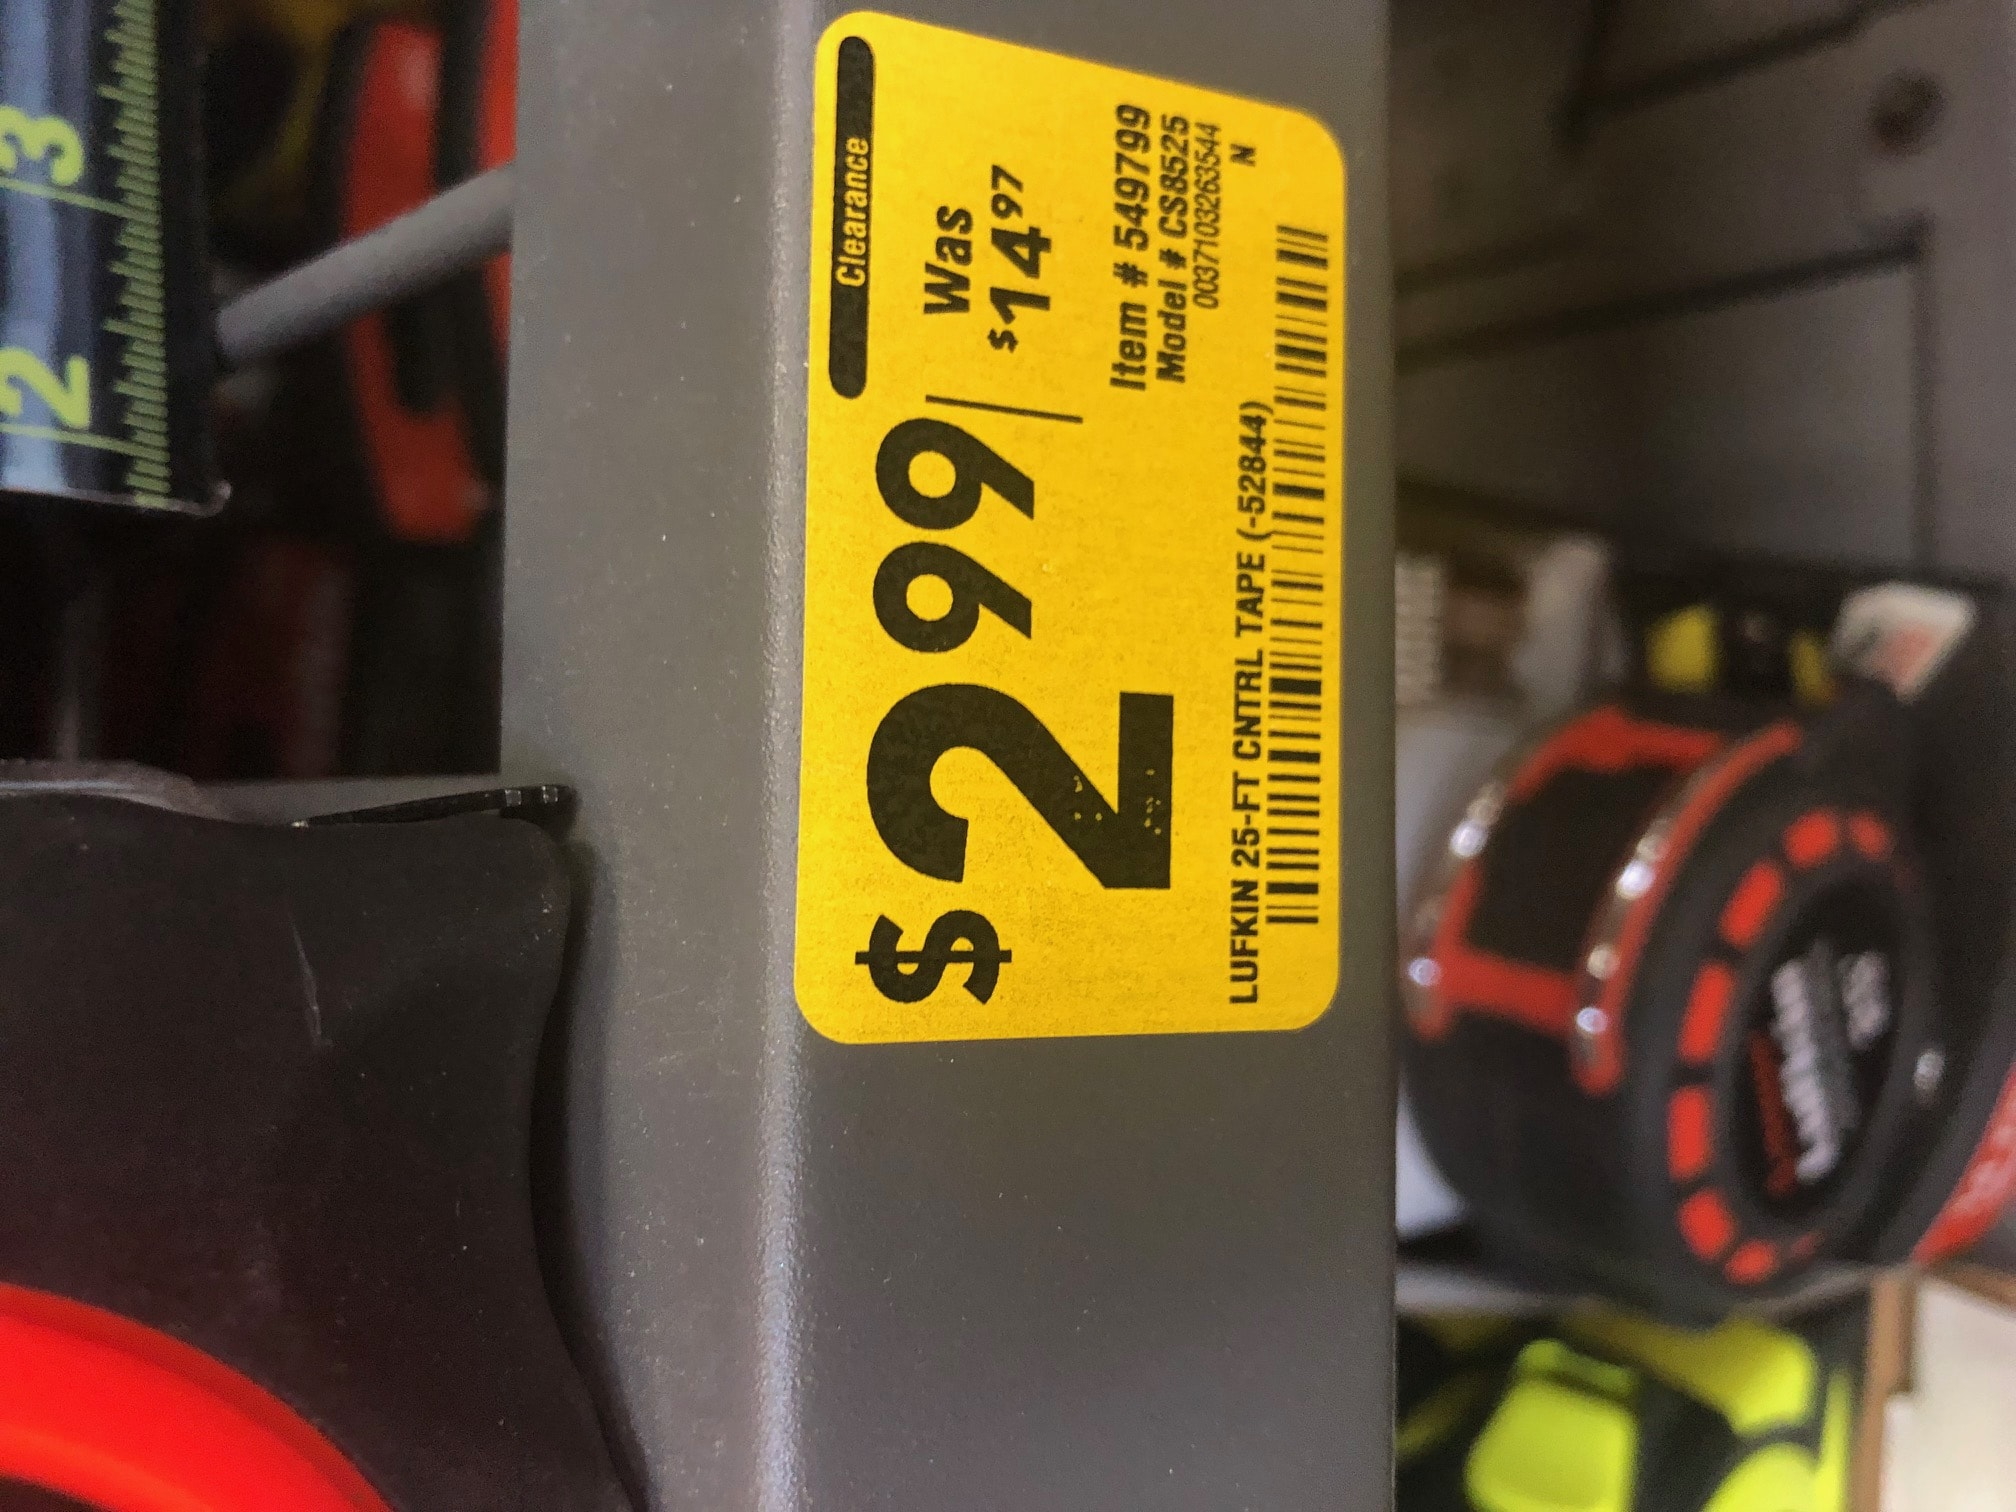 Lowes - Lufkin Tape Measure clearance - $2.99 / was $14.97 YMMV